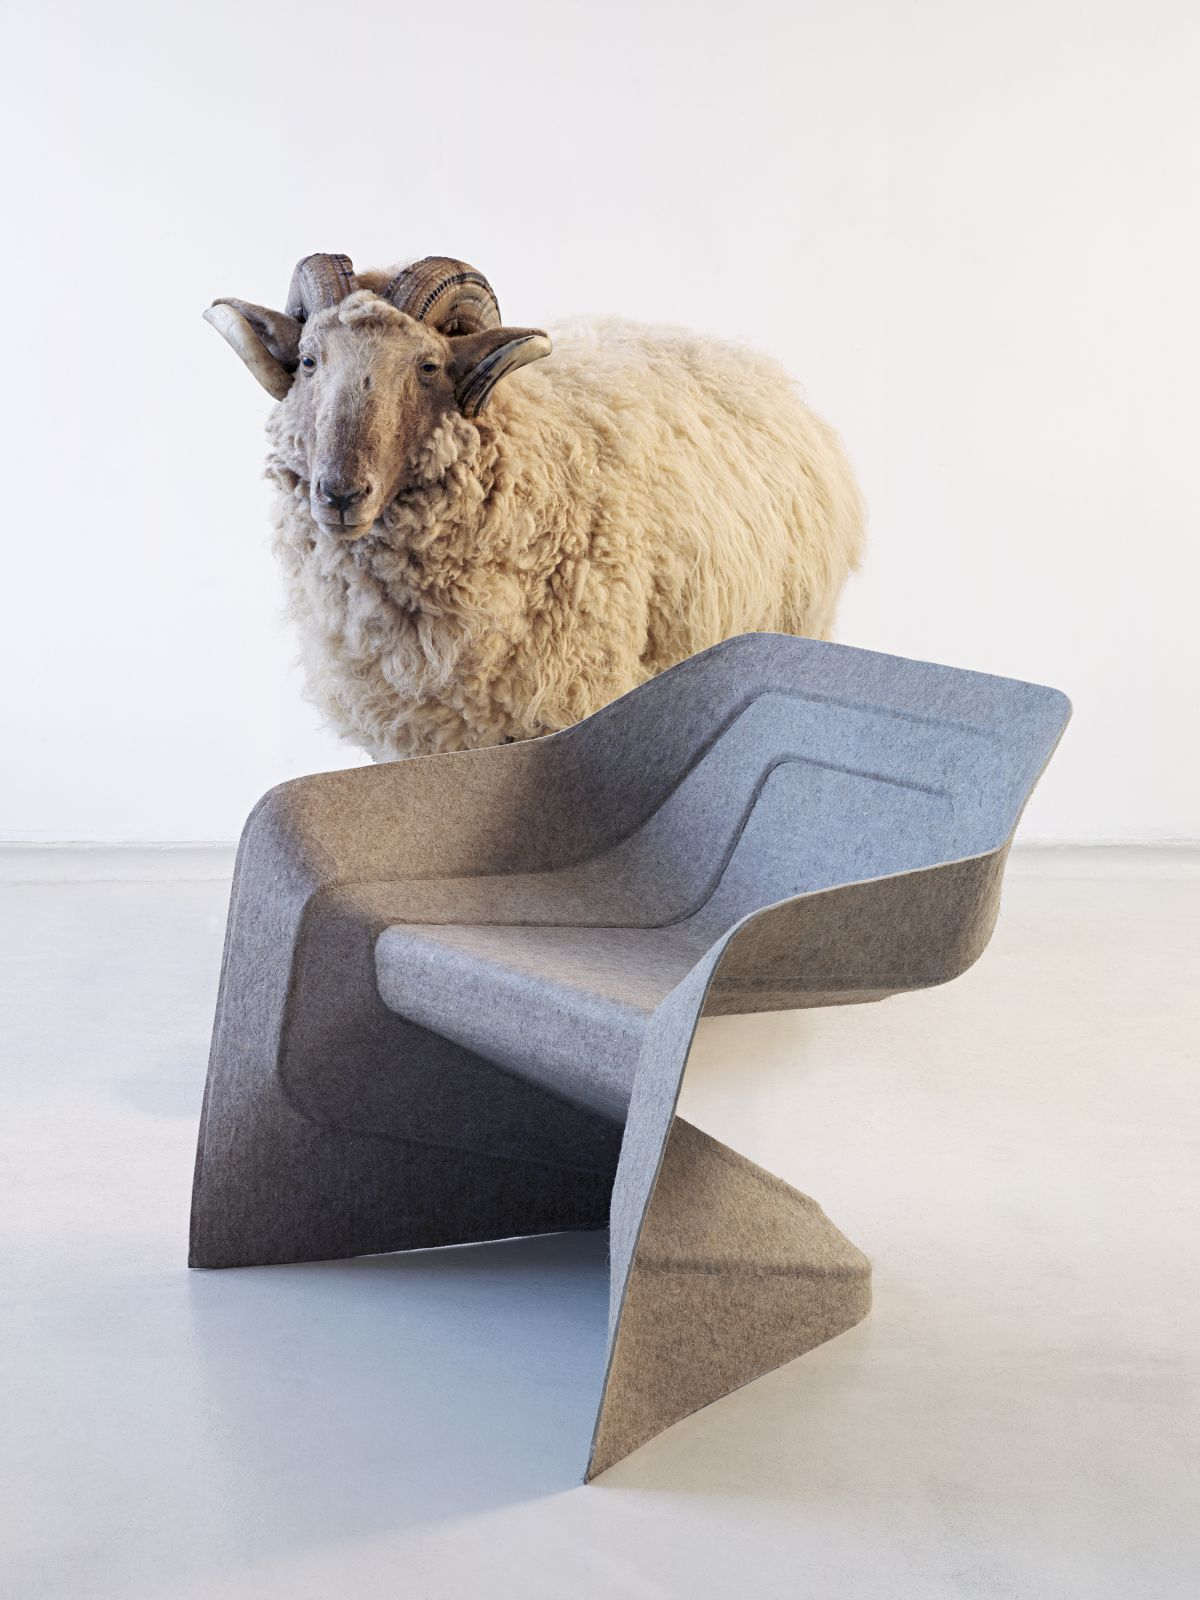 Hemp Chair de Werner Aisslinger